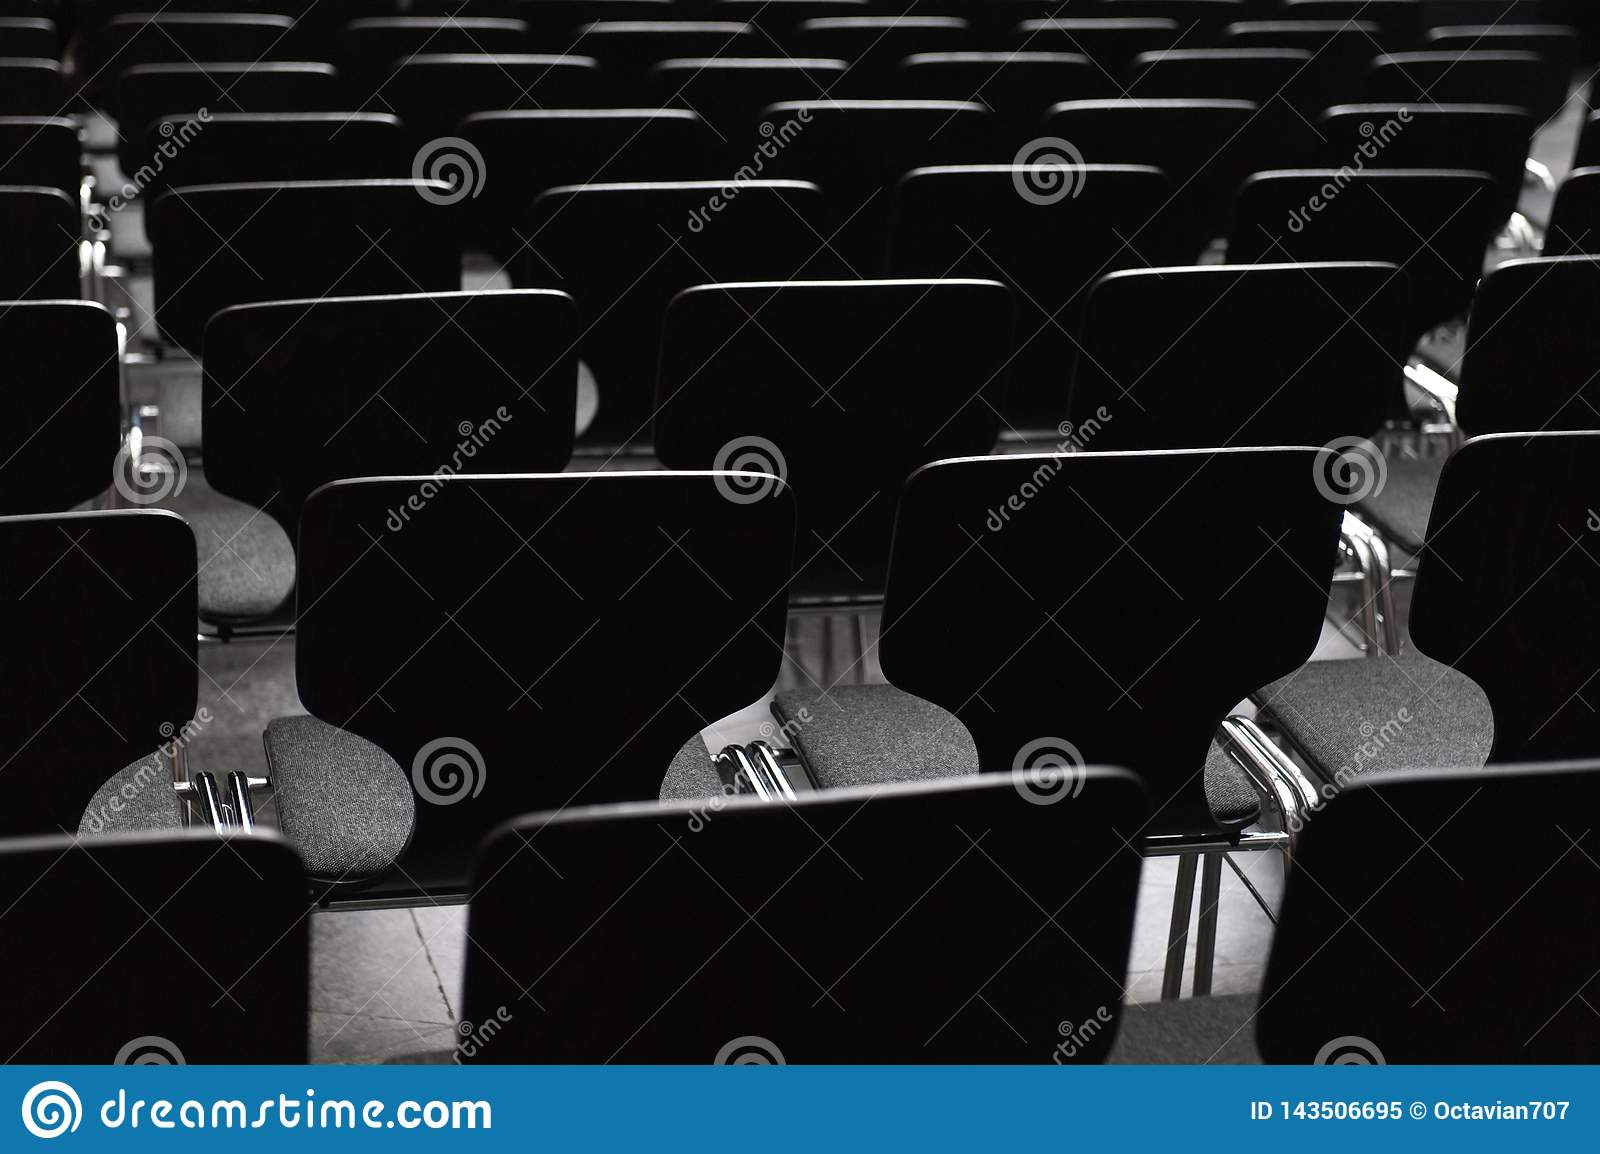 Black wooden chairs in rows